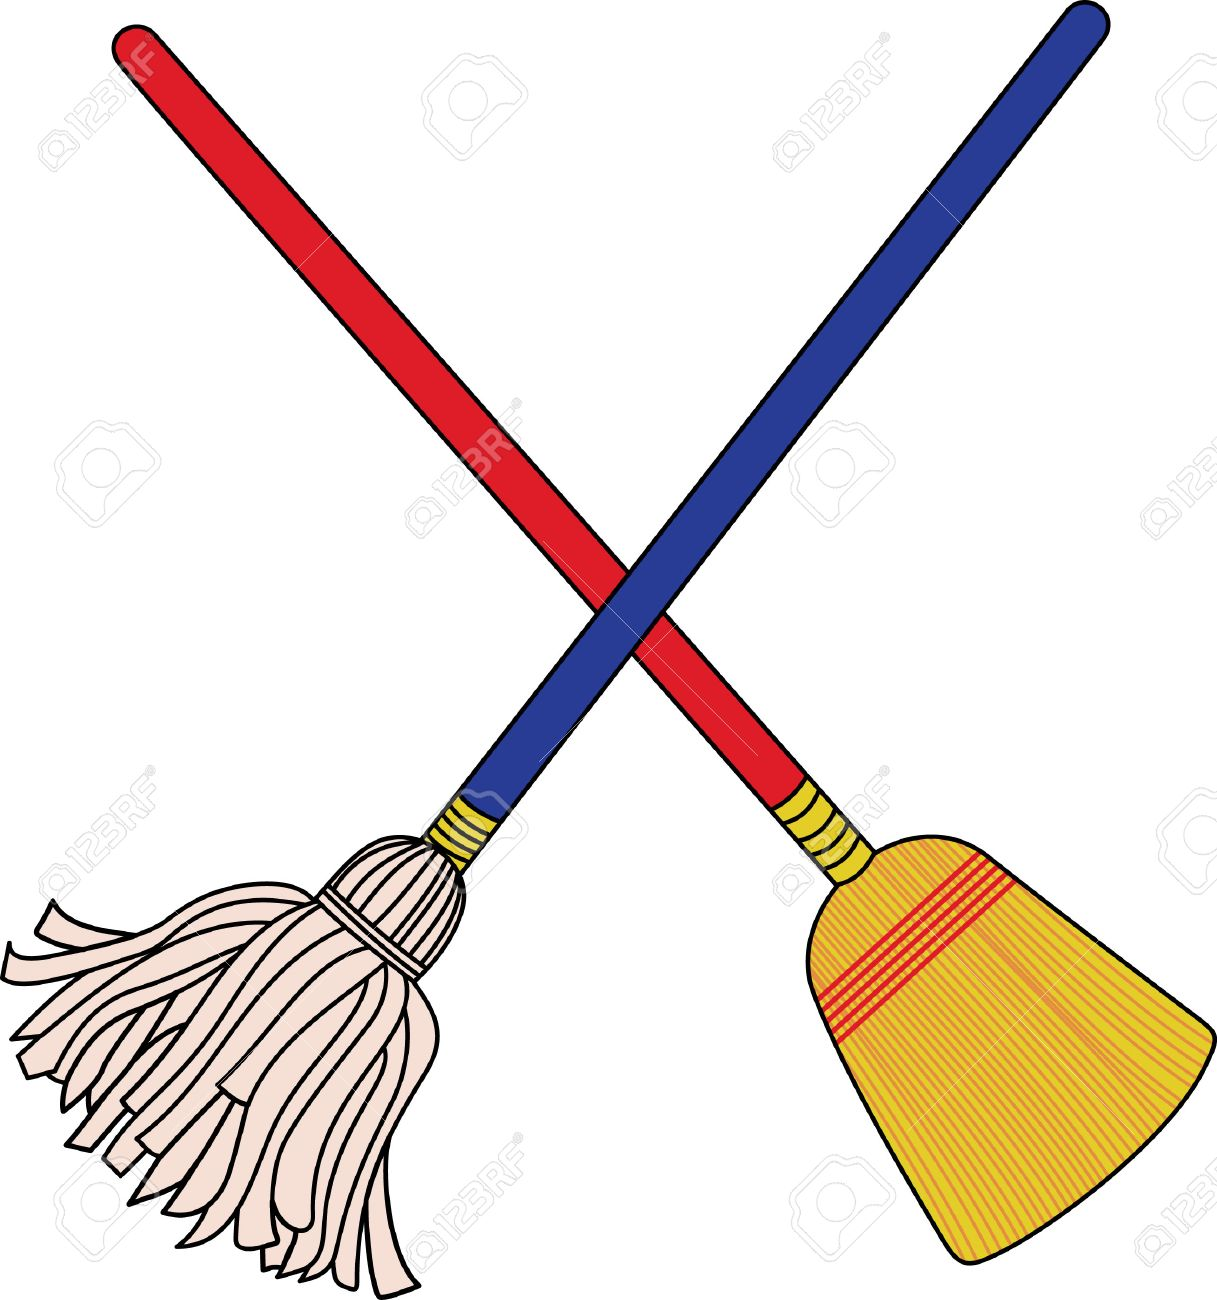 Mop And Broom Clipart & Free Clip Art Images #20401.